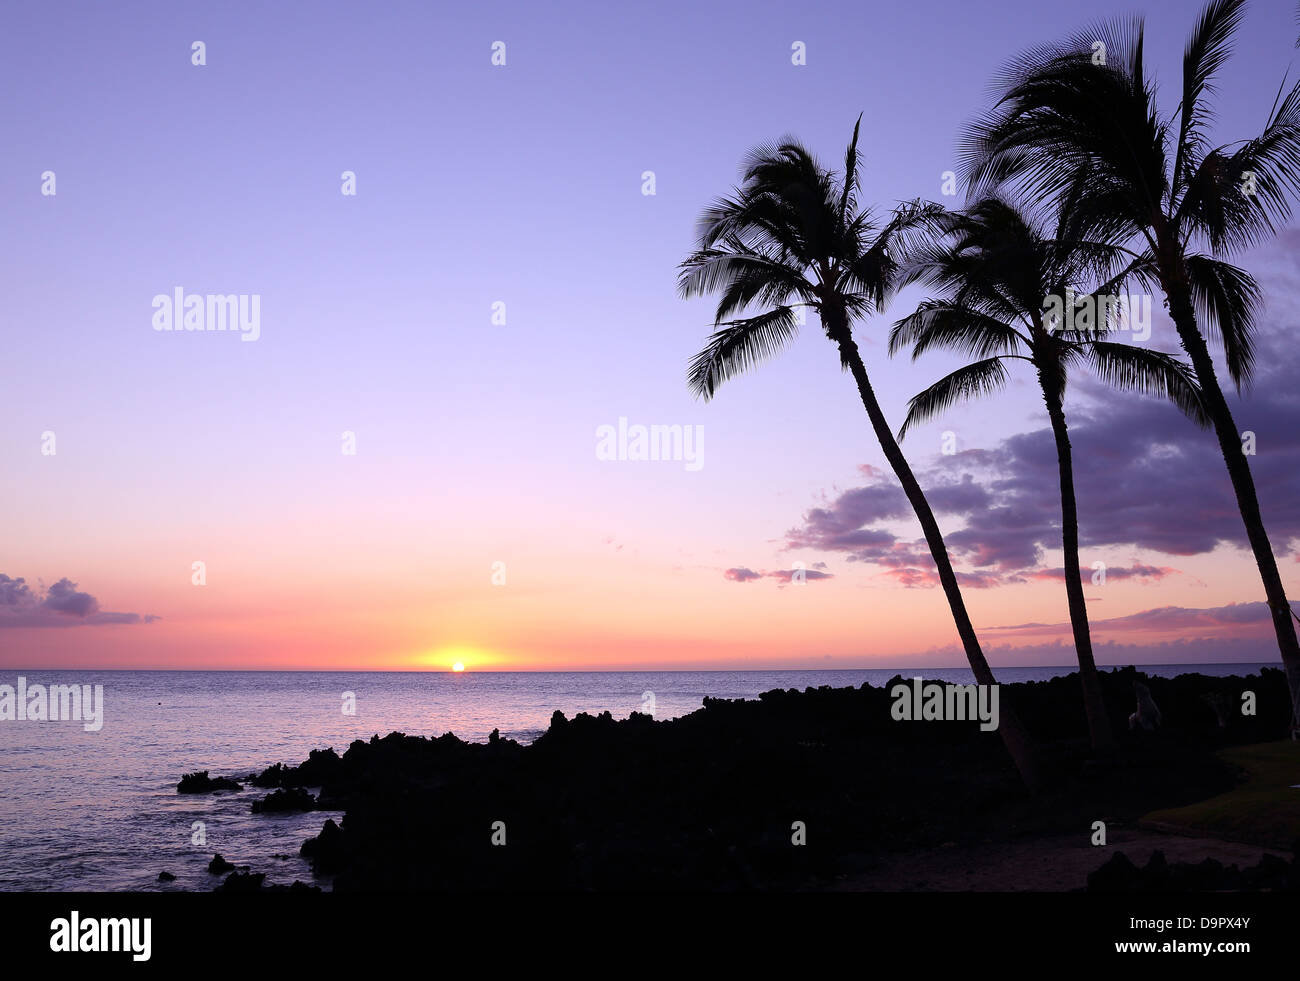 Coucher de soleil sur Big Island, Hawaii, USA Photo Stock